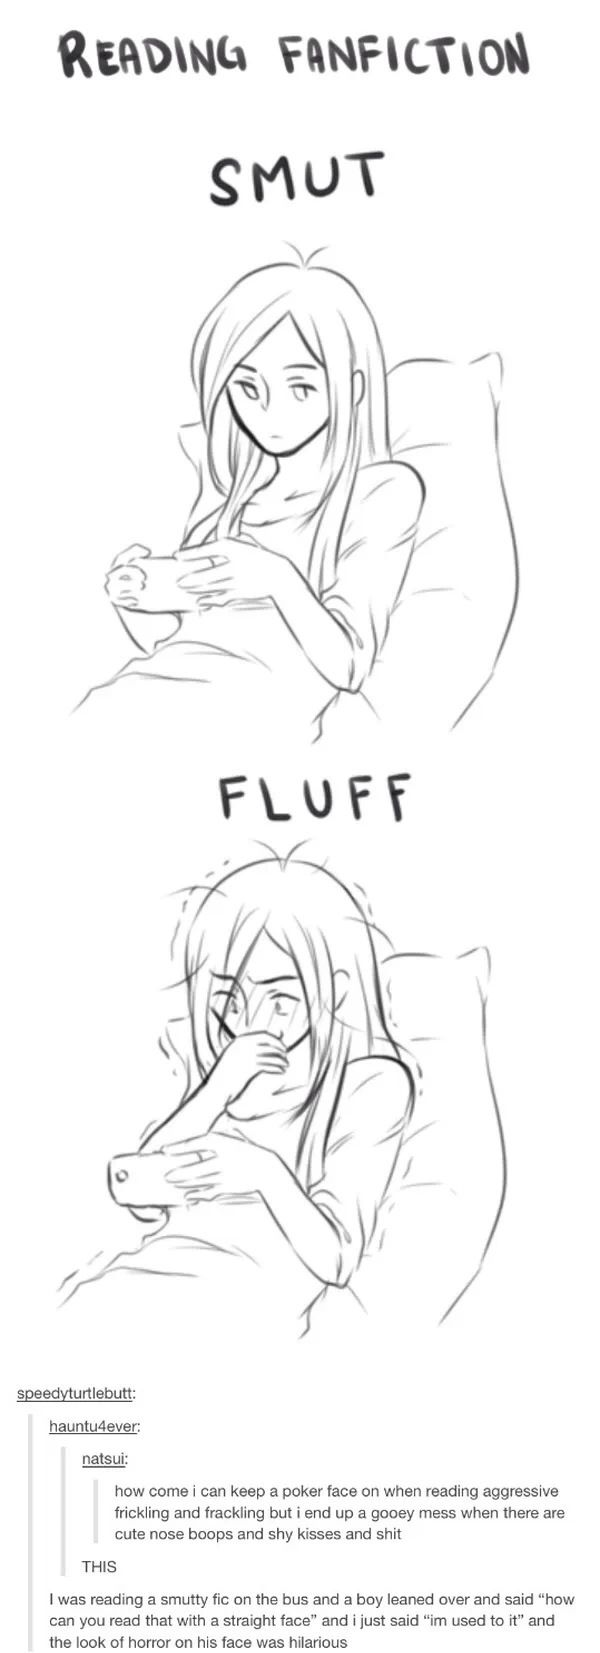 I never read smut, but I still blush furiously when I read fluff, don't understand it.